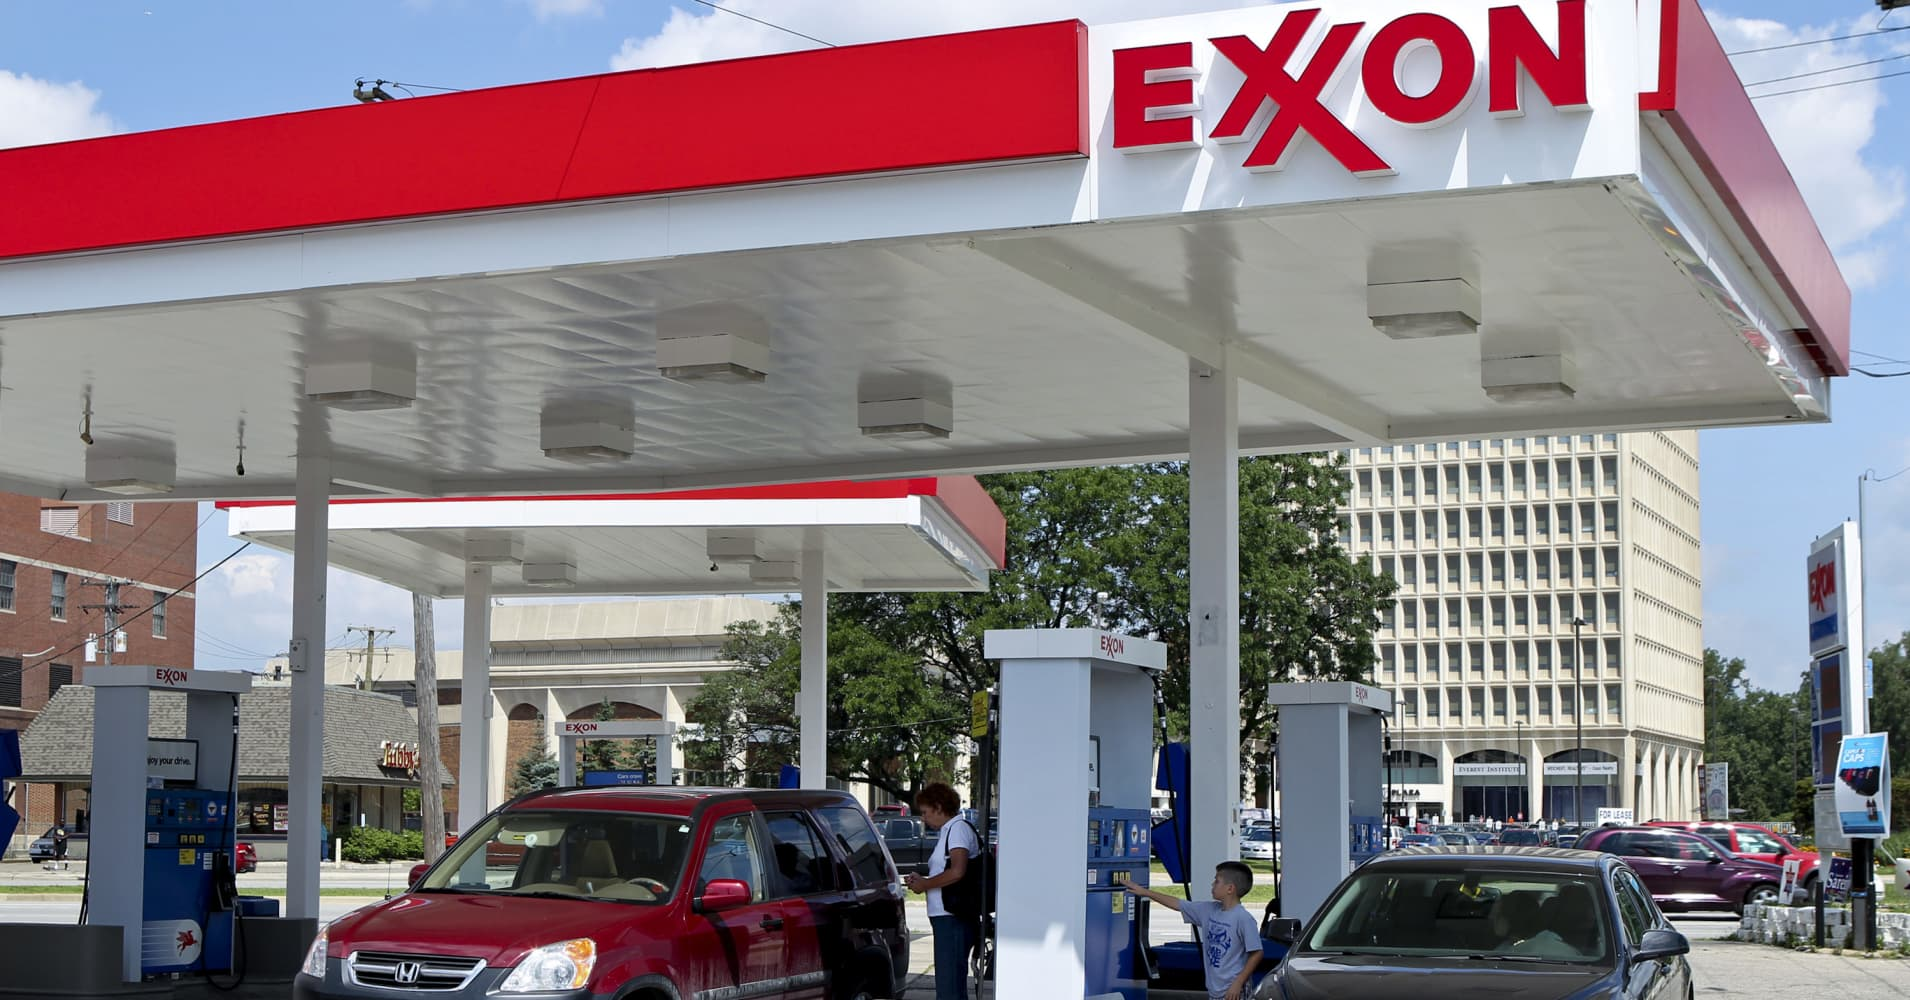 Ouch exxon posts big miss shell takes massive shale charge exxon posts big miss shell takes massive shale charge buycottarizona Gallery